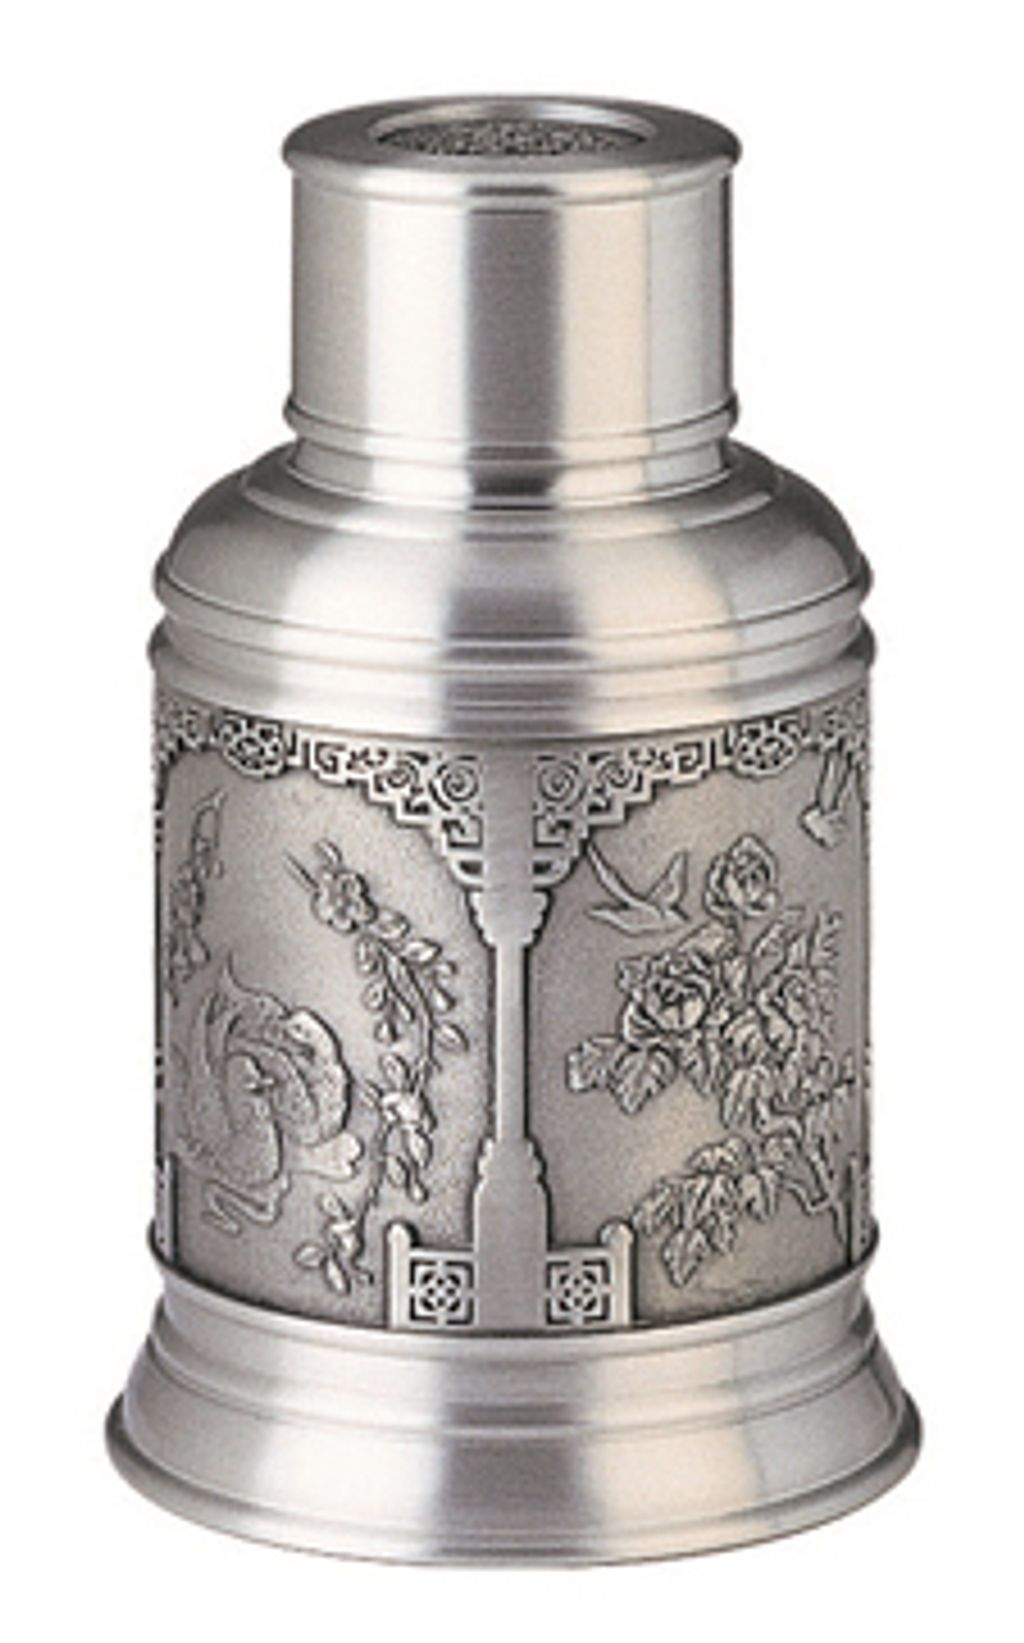 msp34555-pewter-tea-caddy-double-happiness-mypewter-1305-31-MyPewter@12078